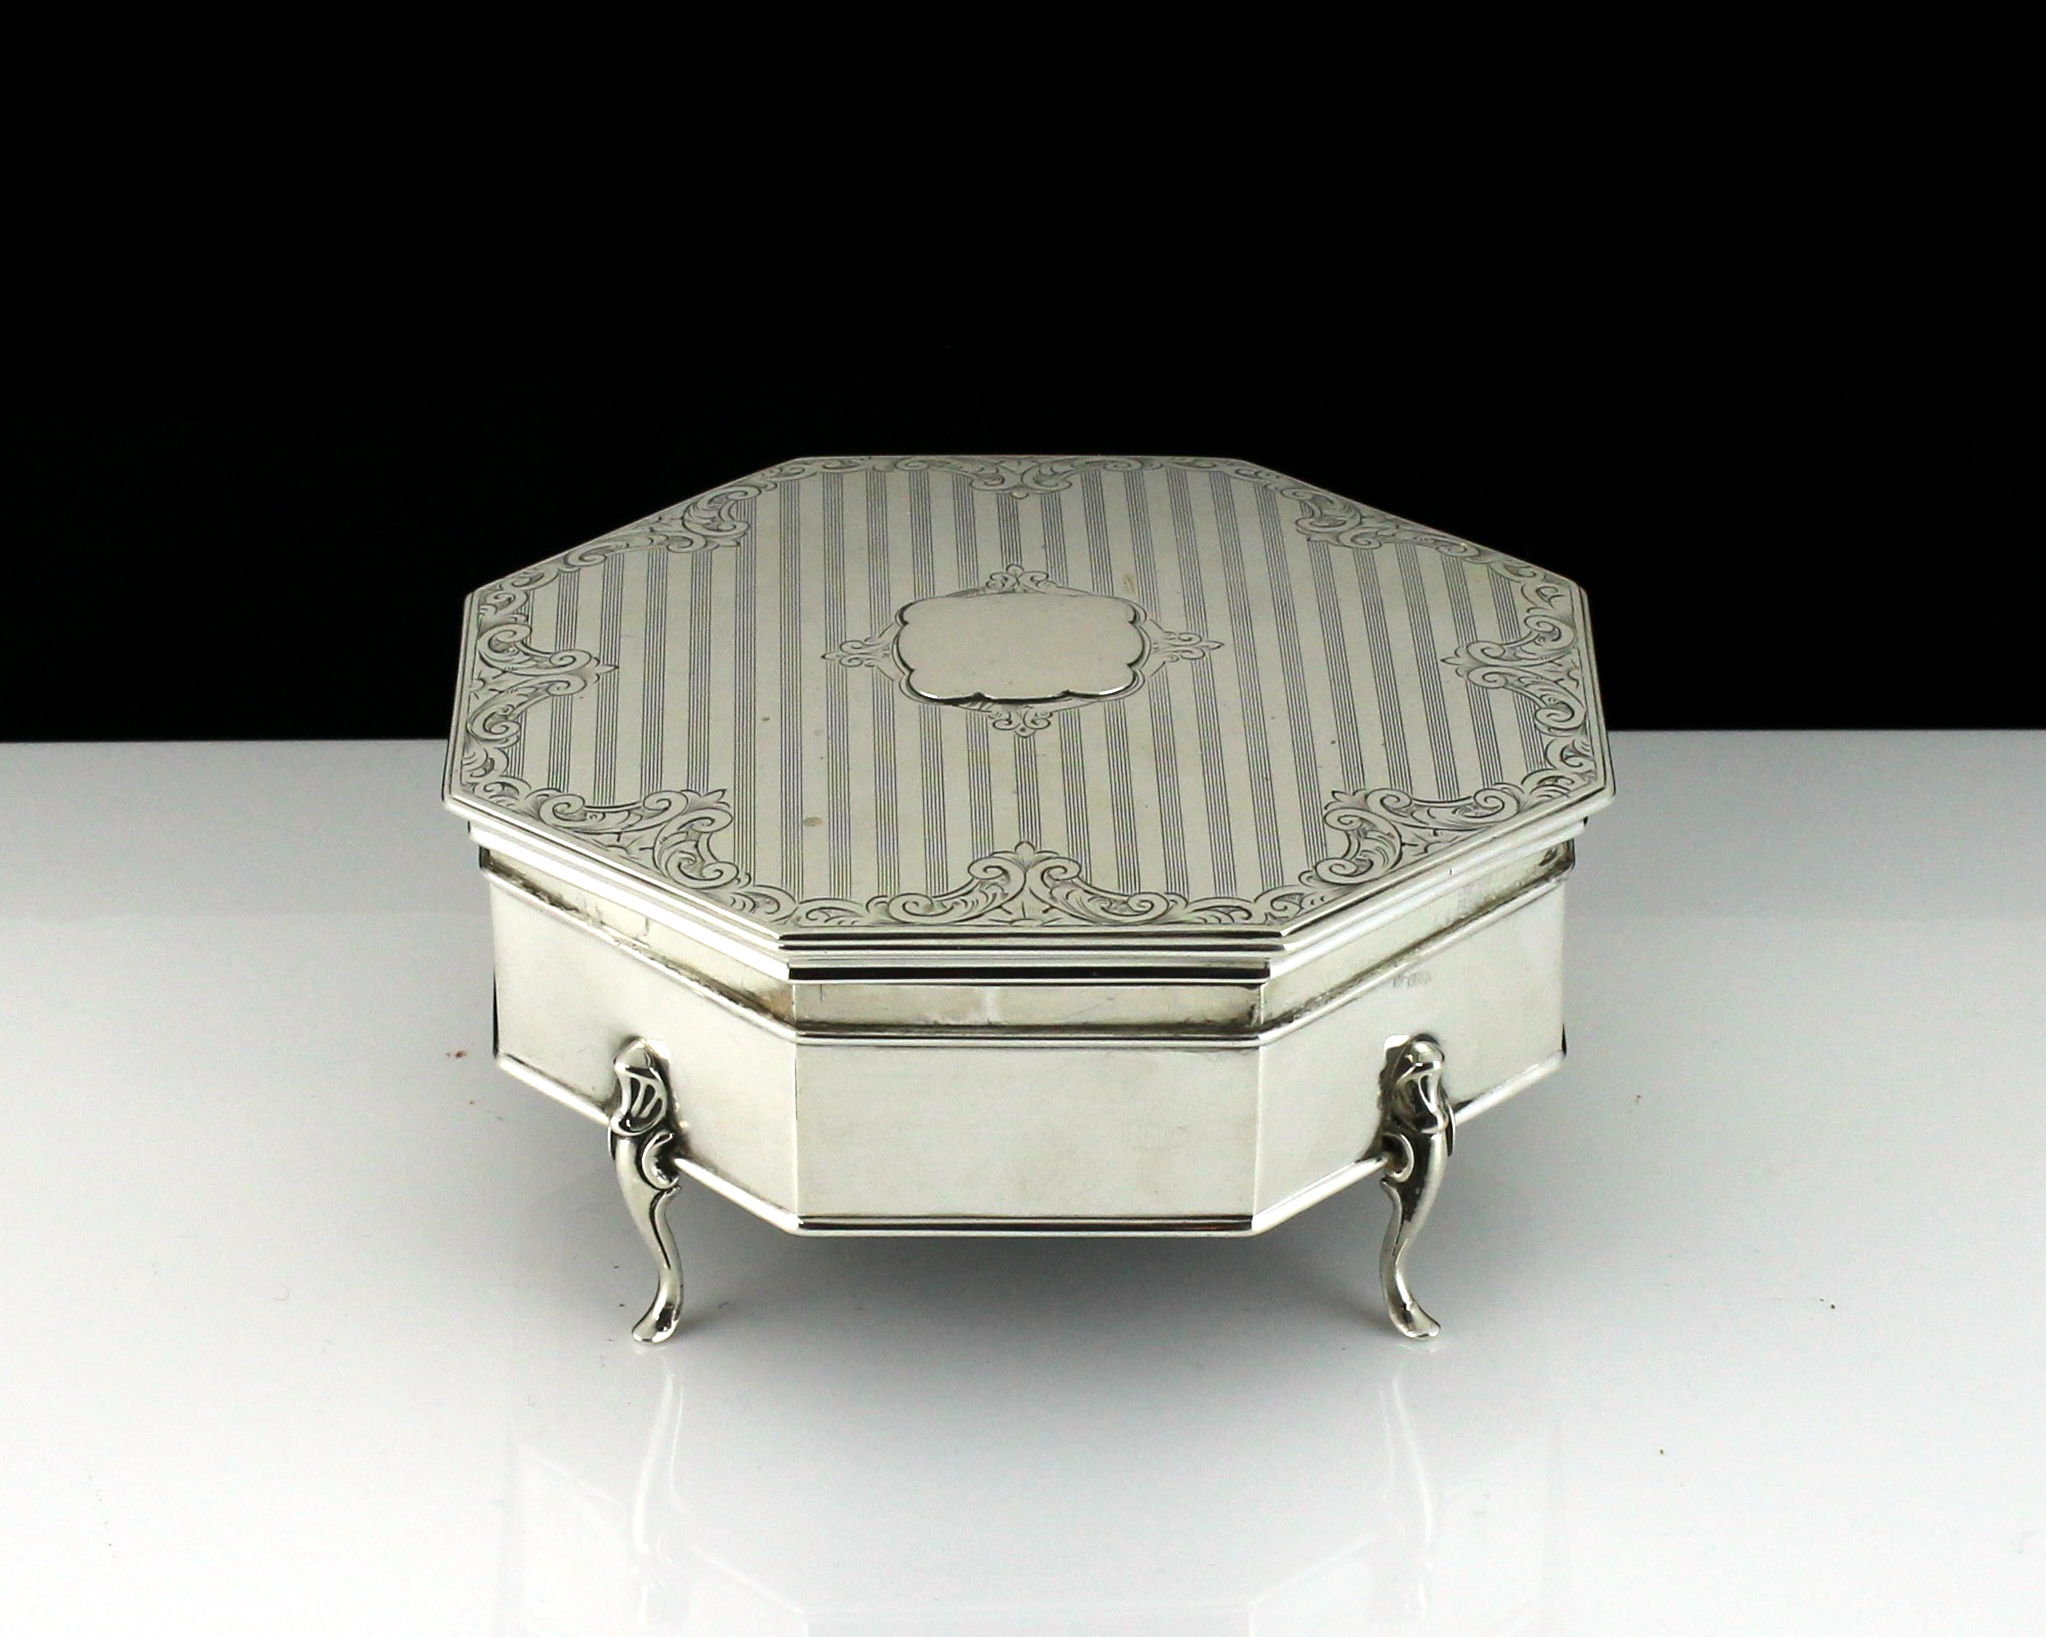 An antique George V Sterling Silver jewellery box by Henry Matthews, Birmingham 1912 of octagonal